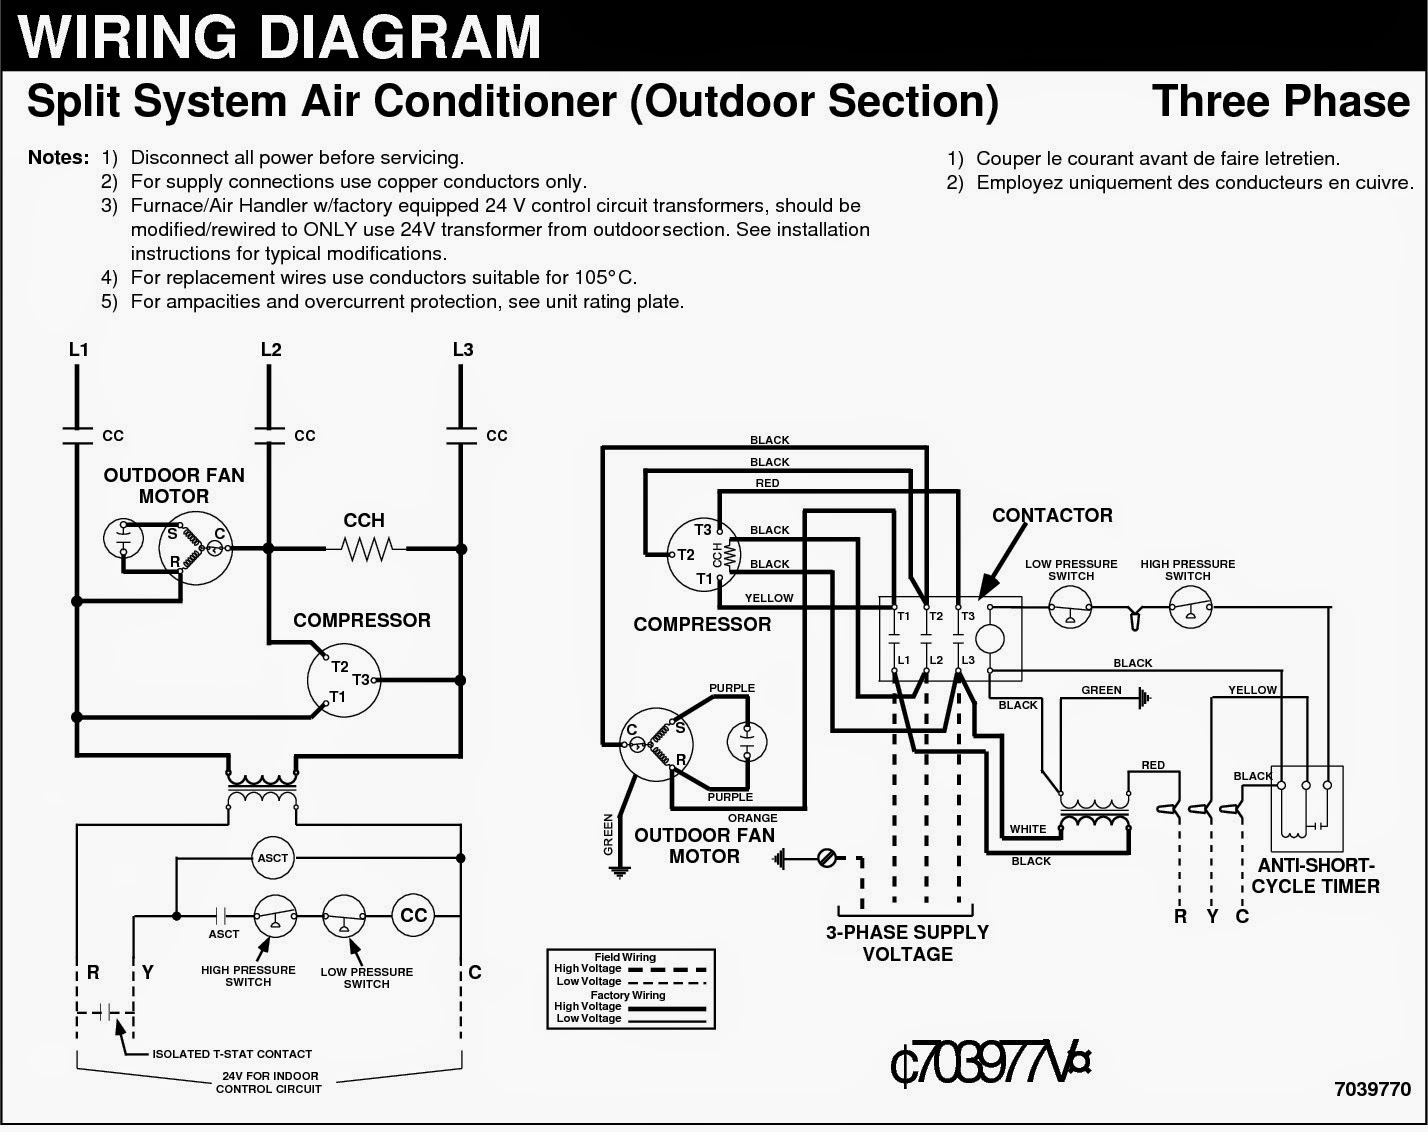 3+phase electrical wiring diagrams for air conditioning systems part two 3 phase wire diagram at eliteediting.co